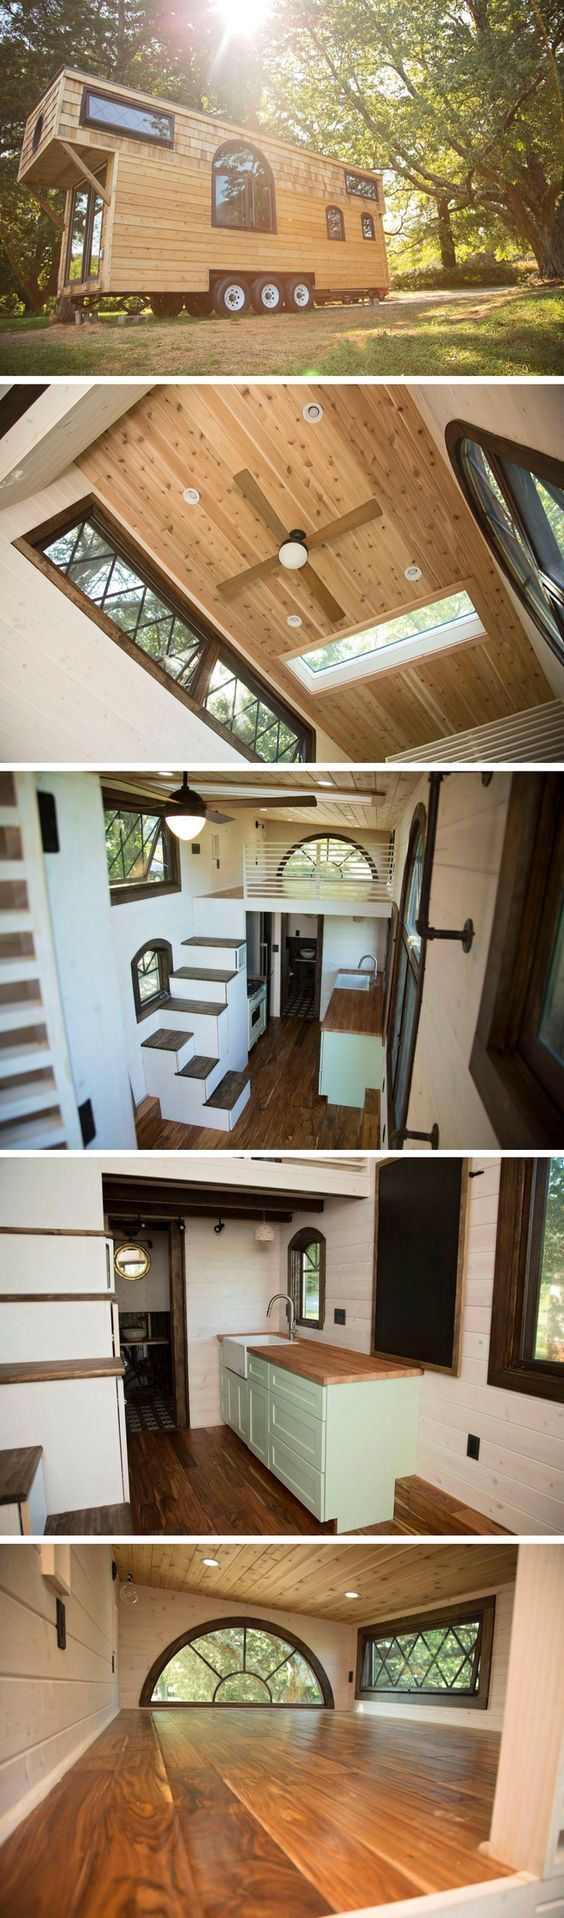 Shipping container homes living for the future earth911 com - The Old World Vermont A 300 Sq Ft Tiny House On Wheels From Perch And